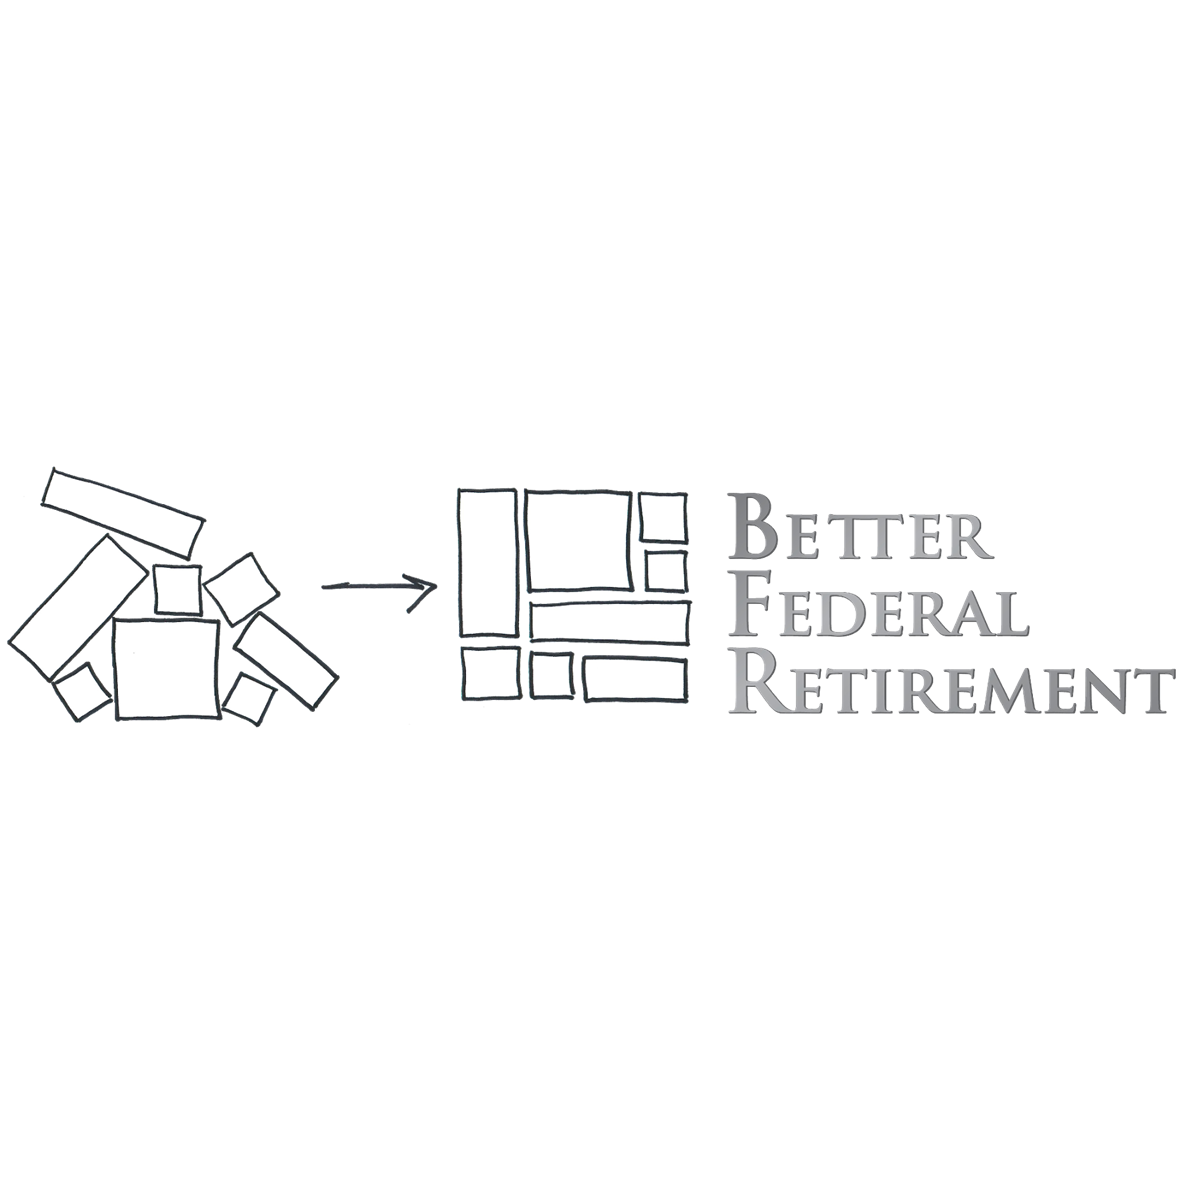 Better Federal Retirement image 1